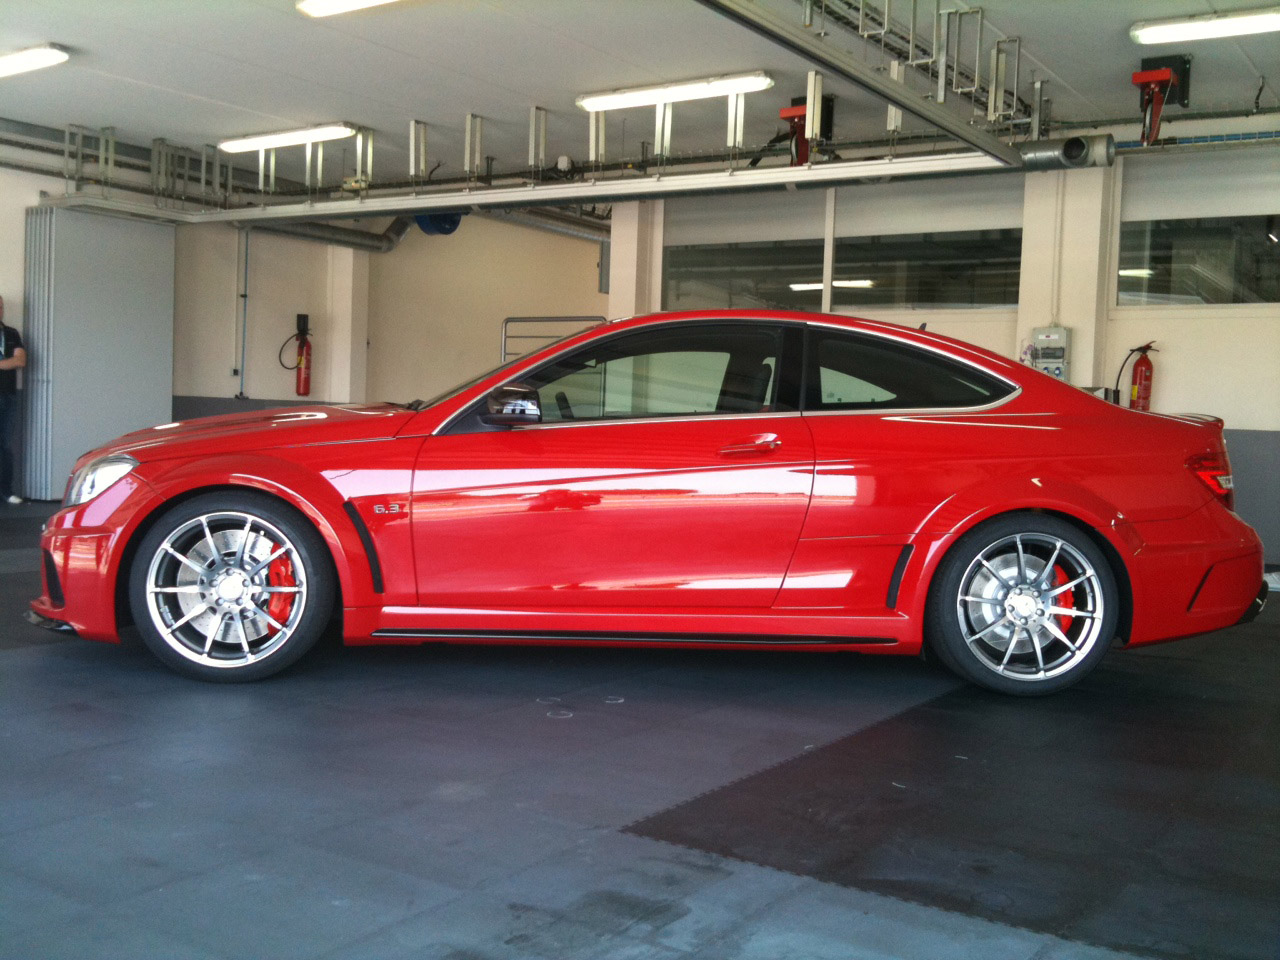 New 2012 Mercedes C63 AMG Black Series Coupé Exposed ...